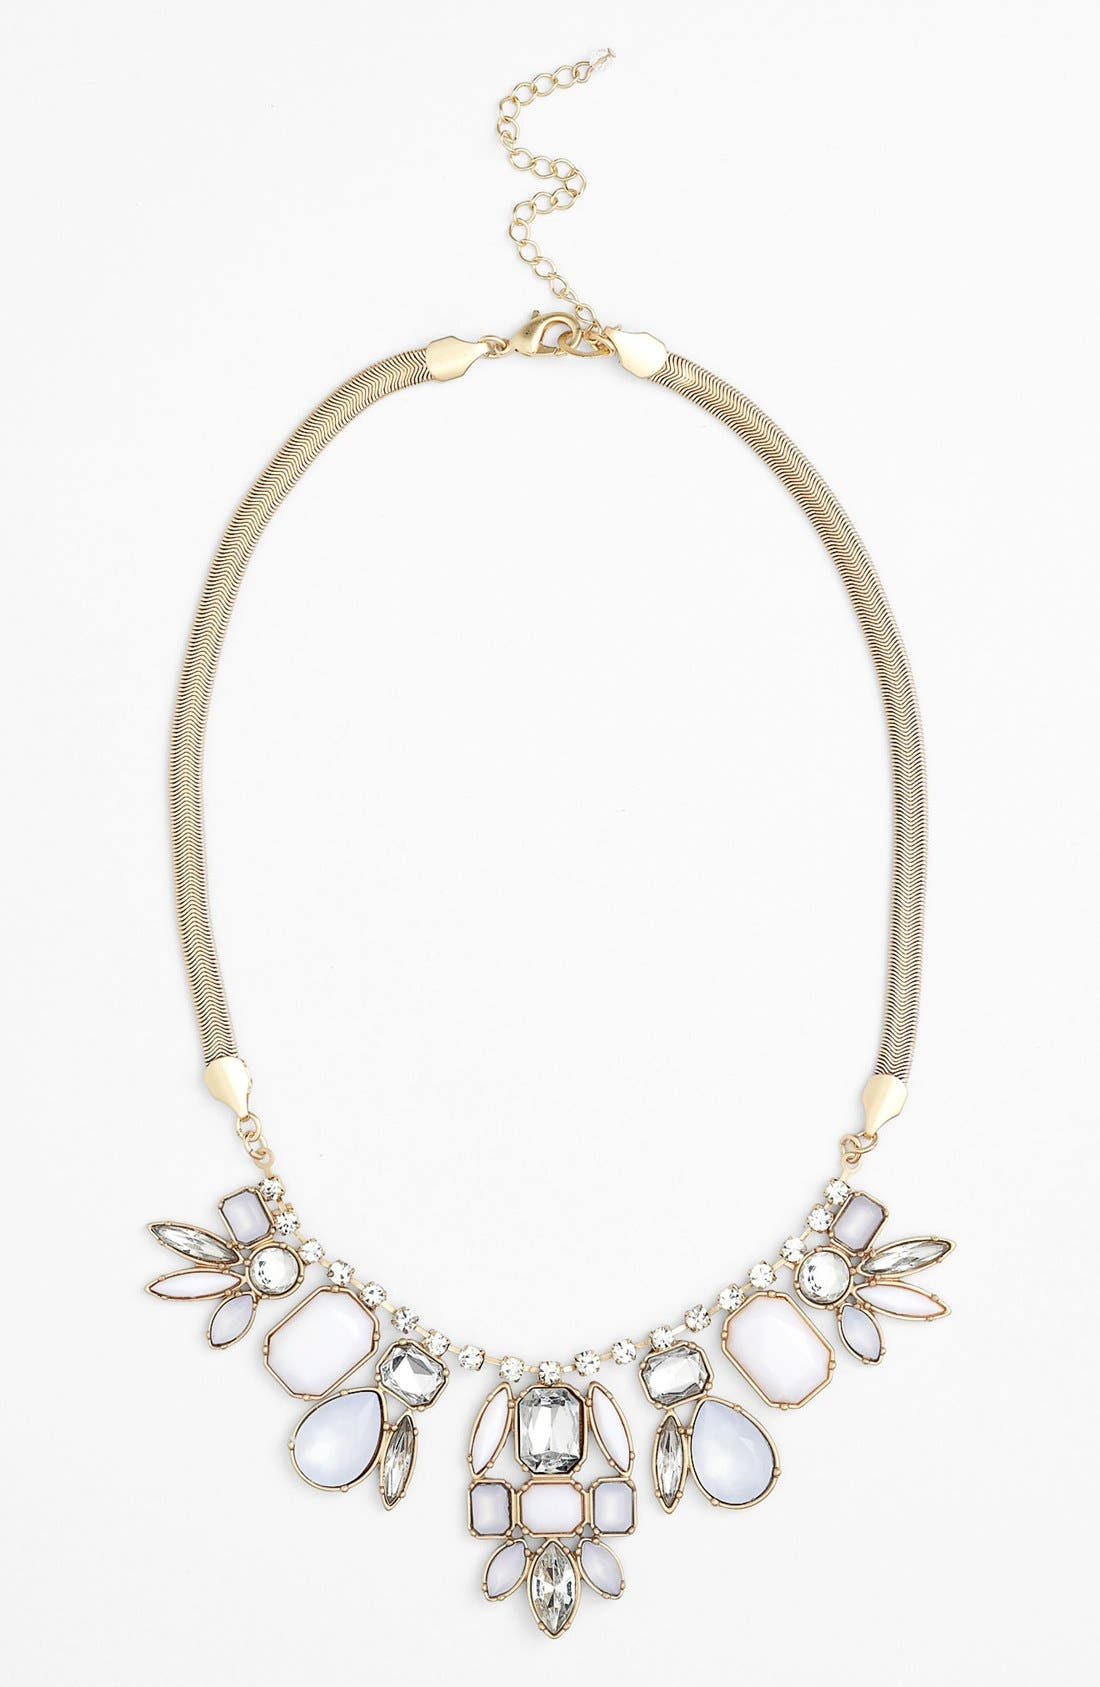 Main Image - Lydell NYC Crystal Bib Necklace